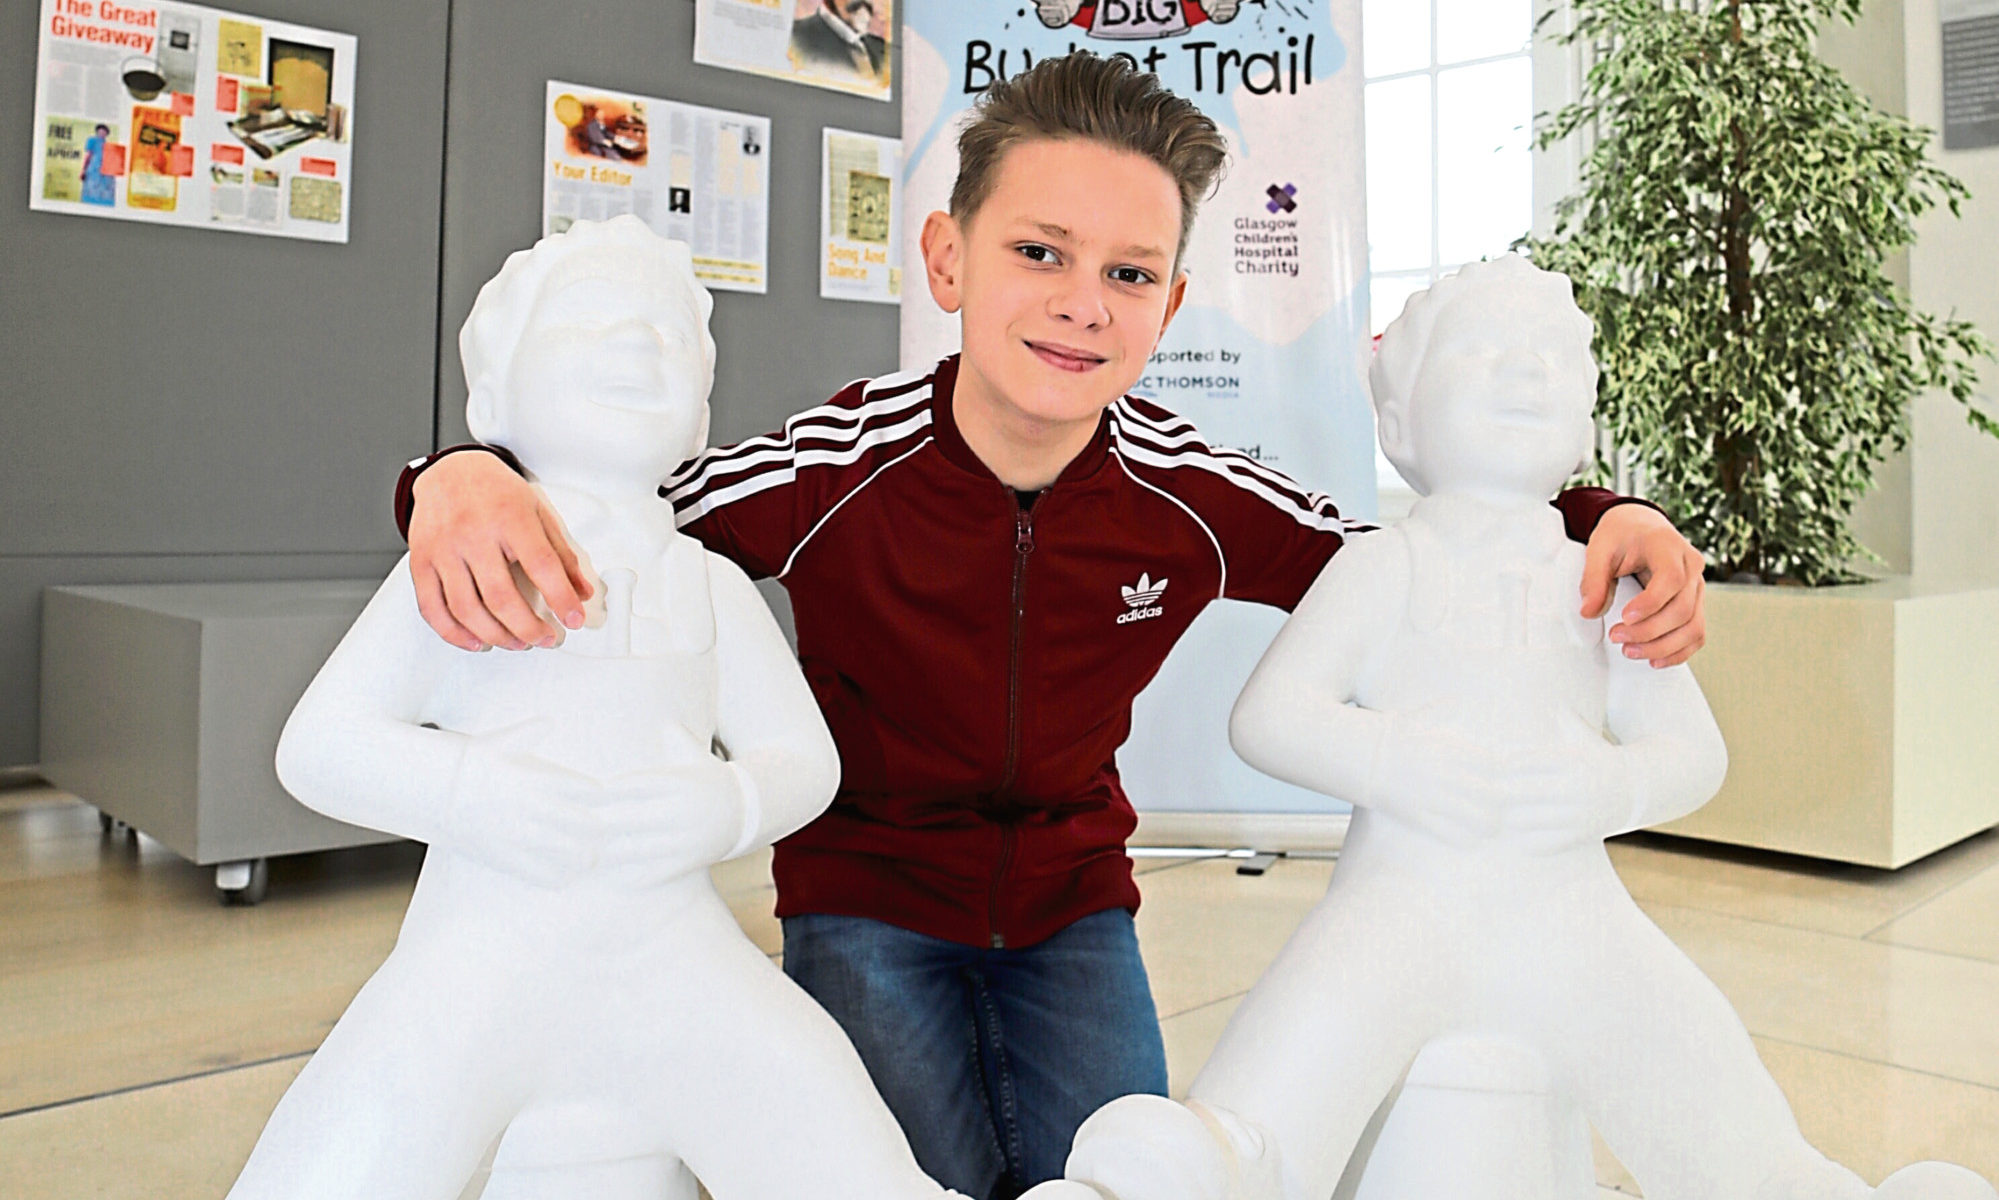 Adam Biesok from Timmergreens Primary School in Arbroath poses with two Wullie statues